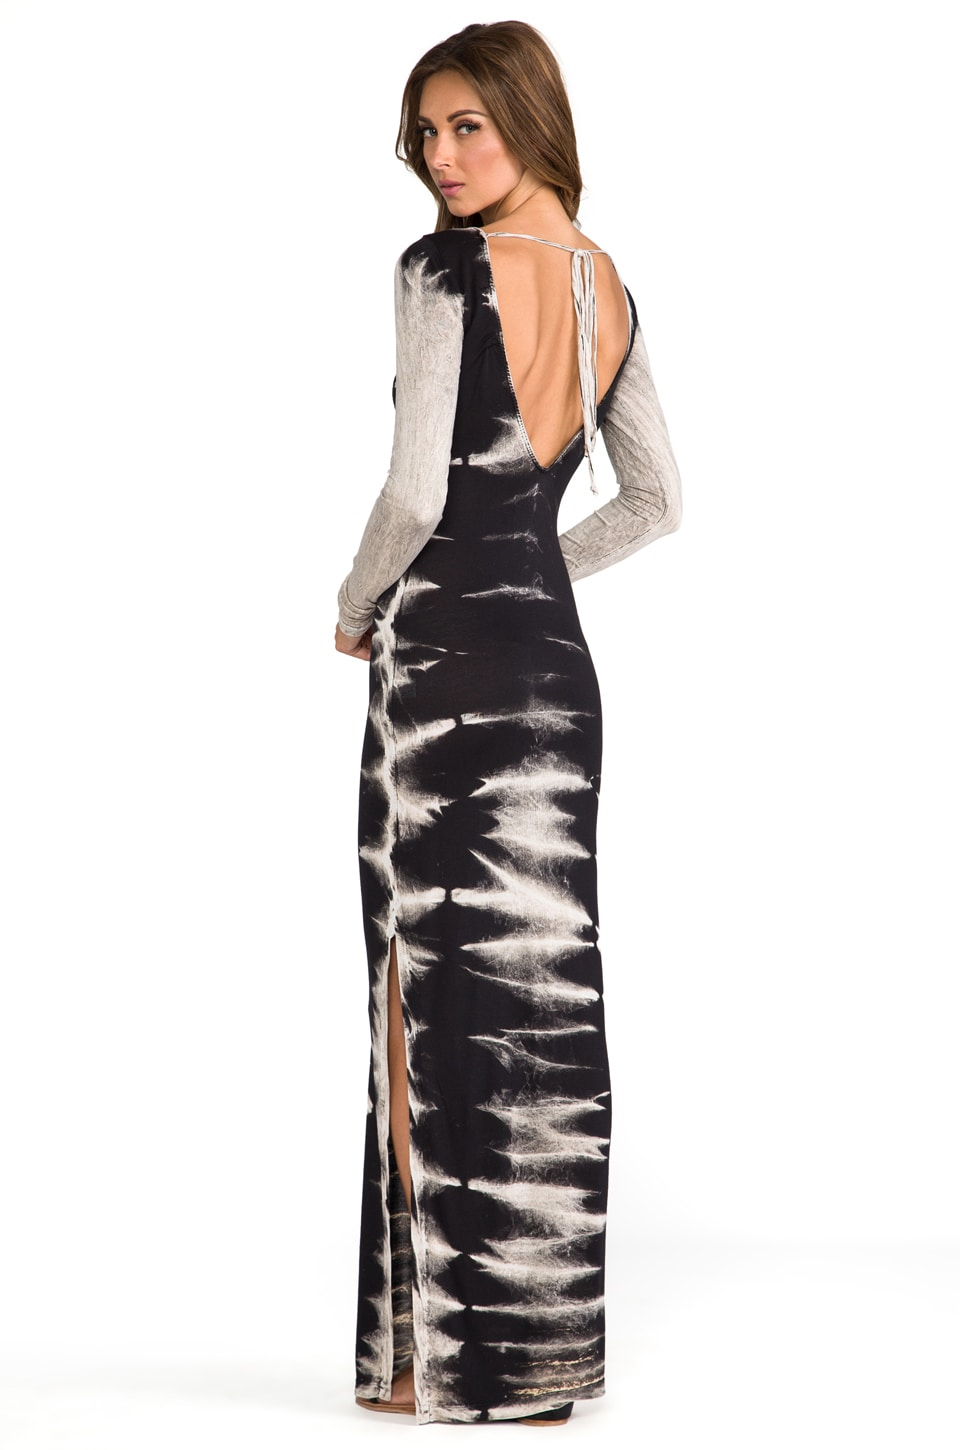 WOODLEIGH Ardis Maxi Dress in Black